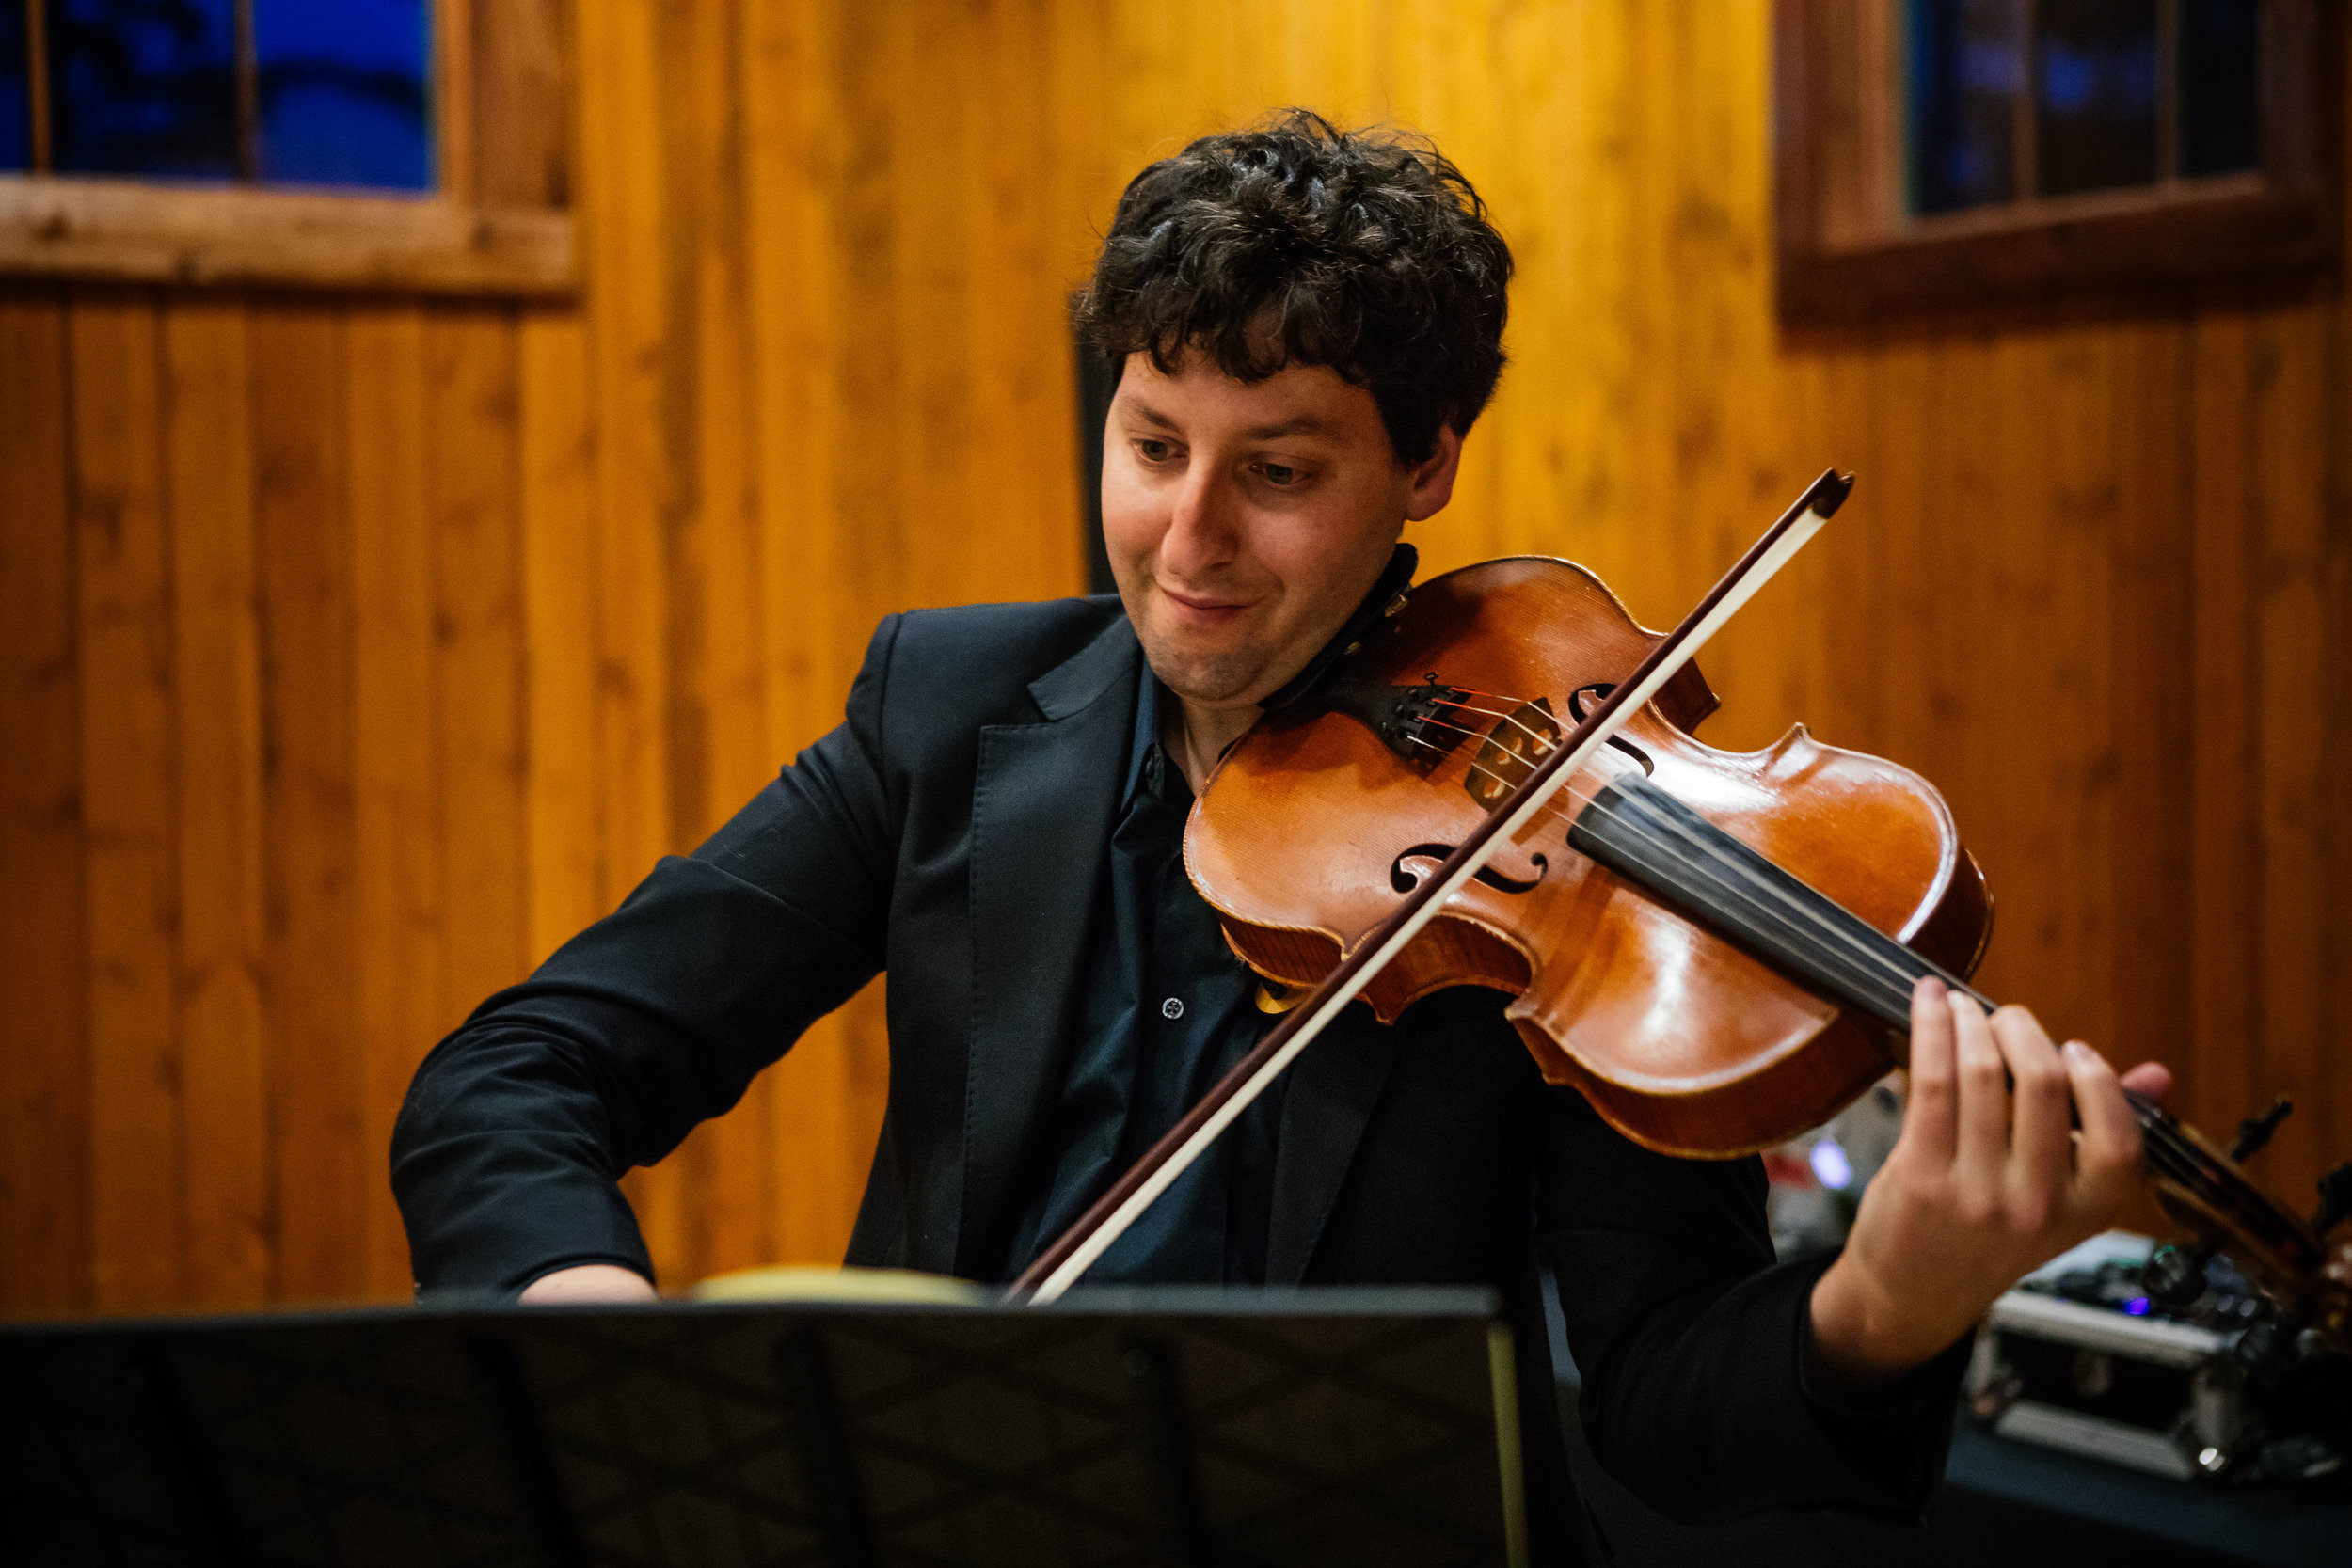 July 6 - 21, 2019 - Each summer, the internationally acclaimed Faculty Artists of the Rushmore Music Festival who mentor the talented students in the Summer Academy, present a professional chamber music concert series in Rapid City and Spearfish. This summer, there will be THREE different programs,